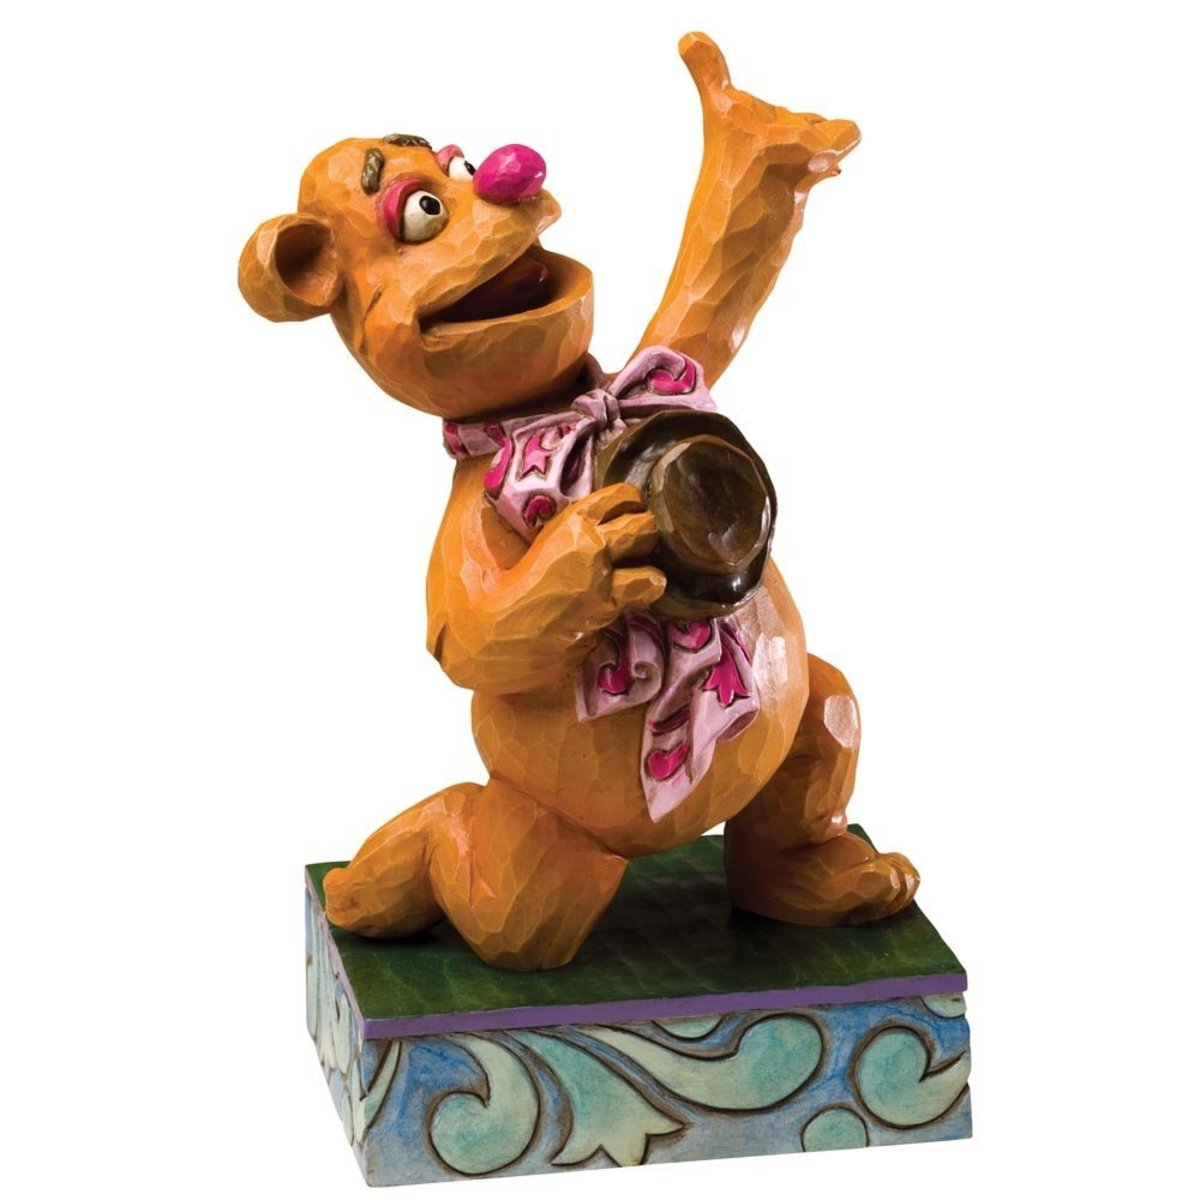 Jim Shore's Fozzie Bear Ornament